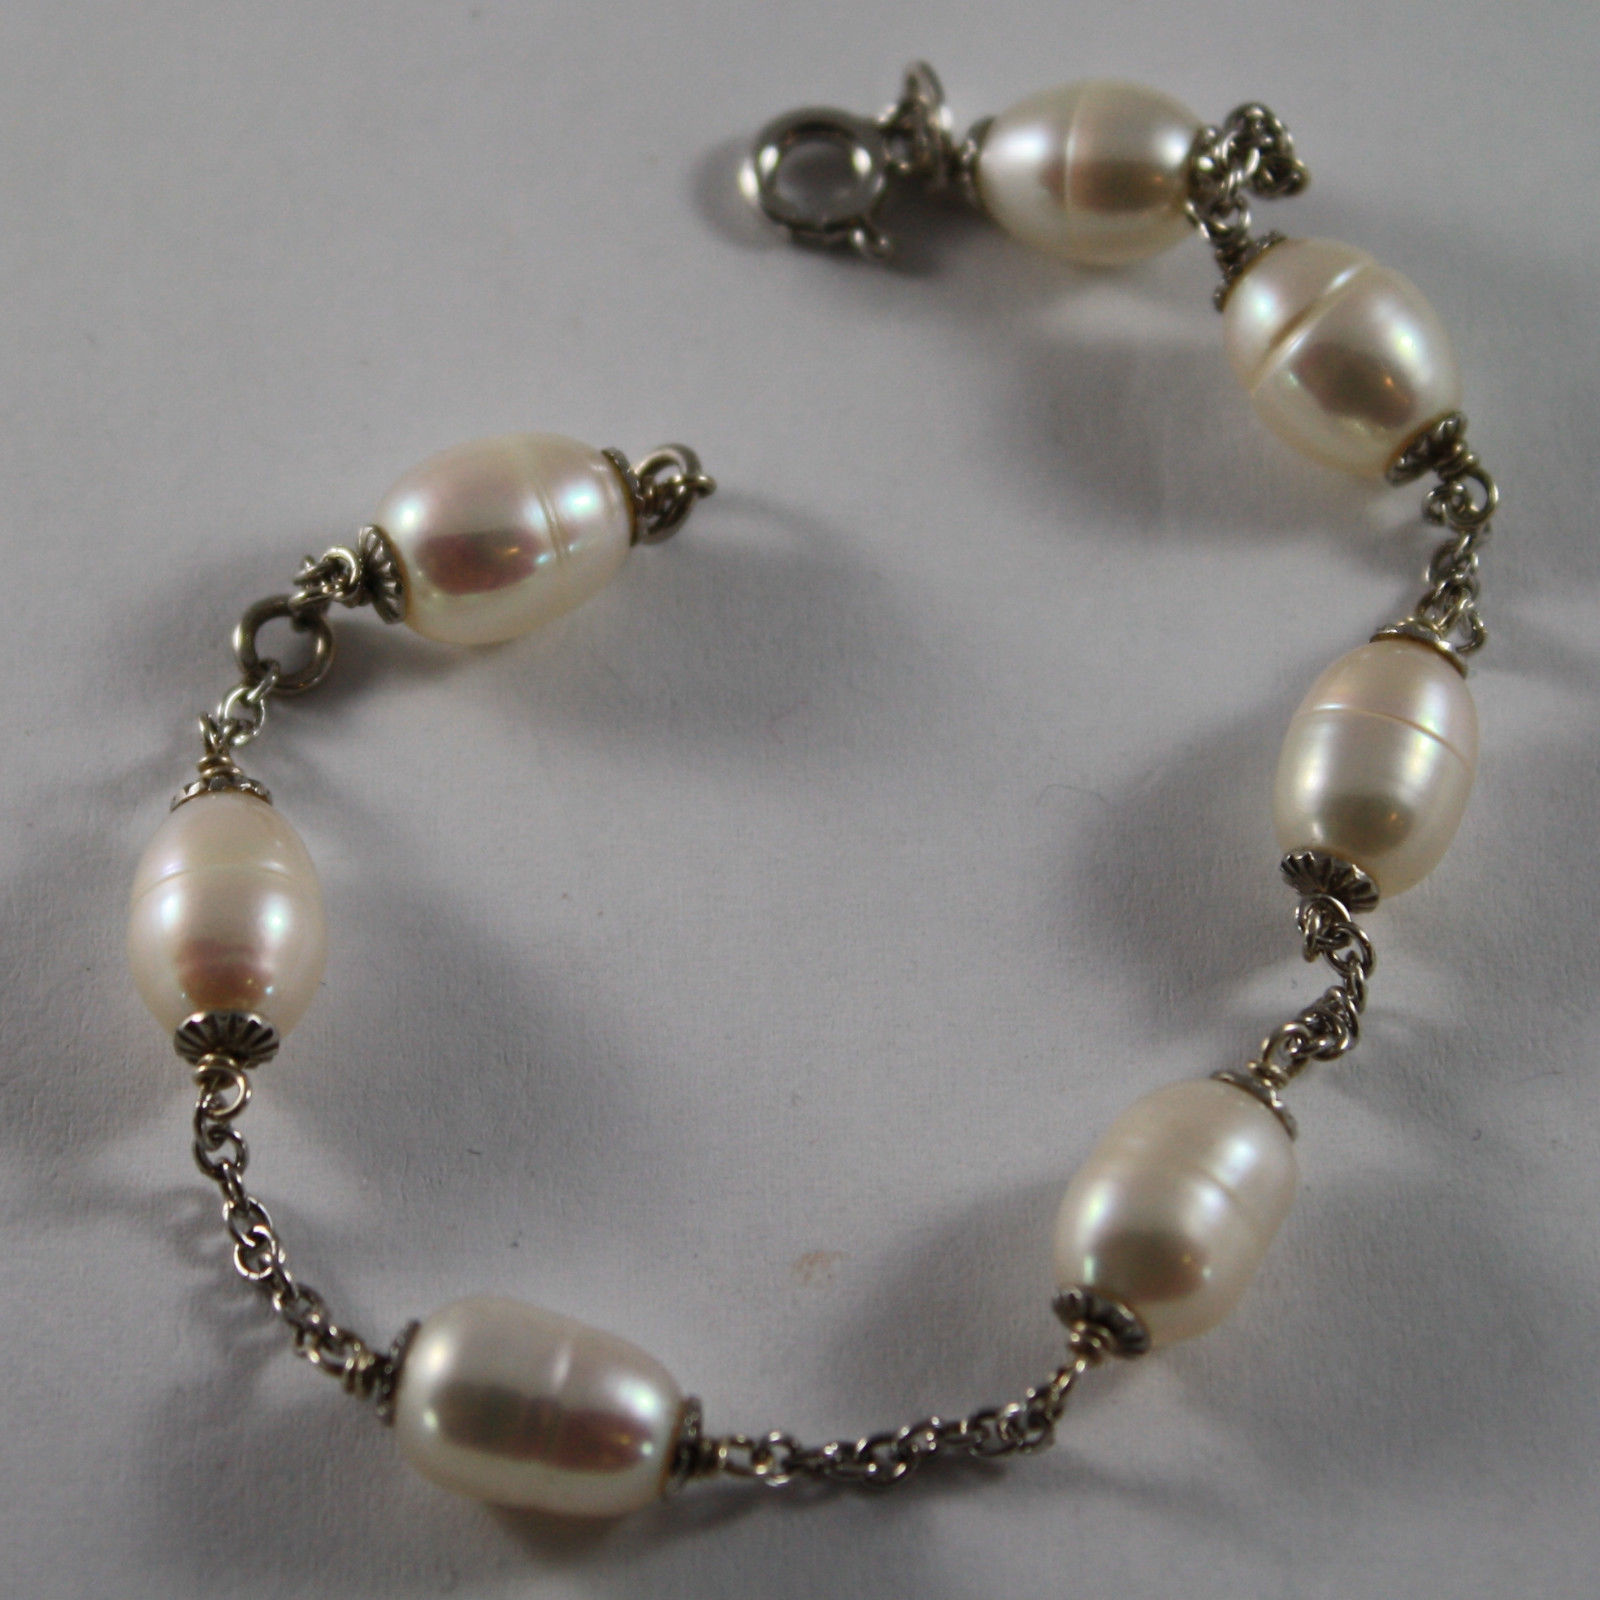 .925 RHODIUM SILVER BRACELET WITH WHITE PEARLS